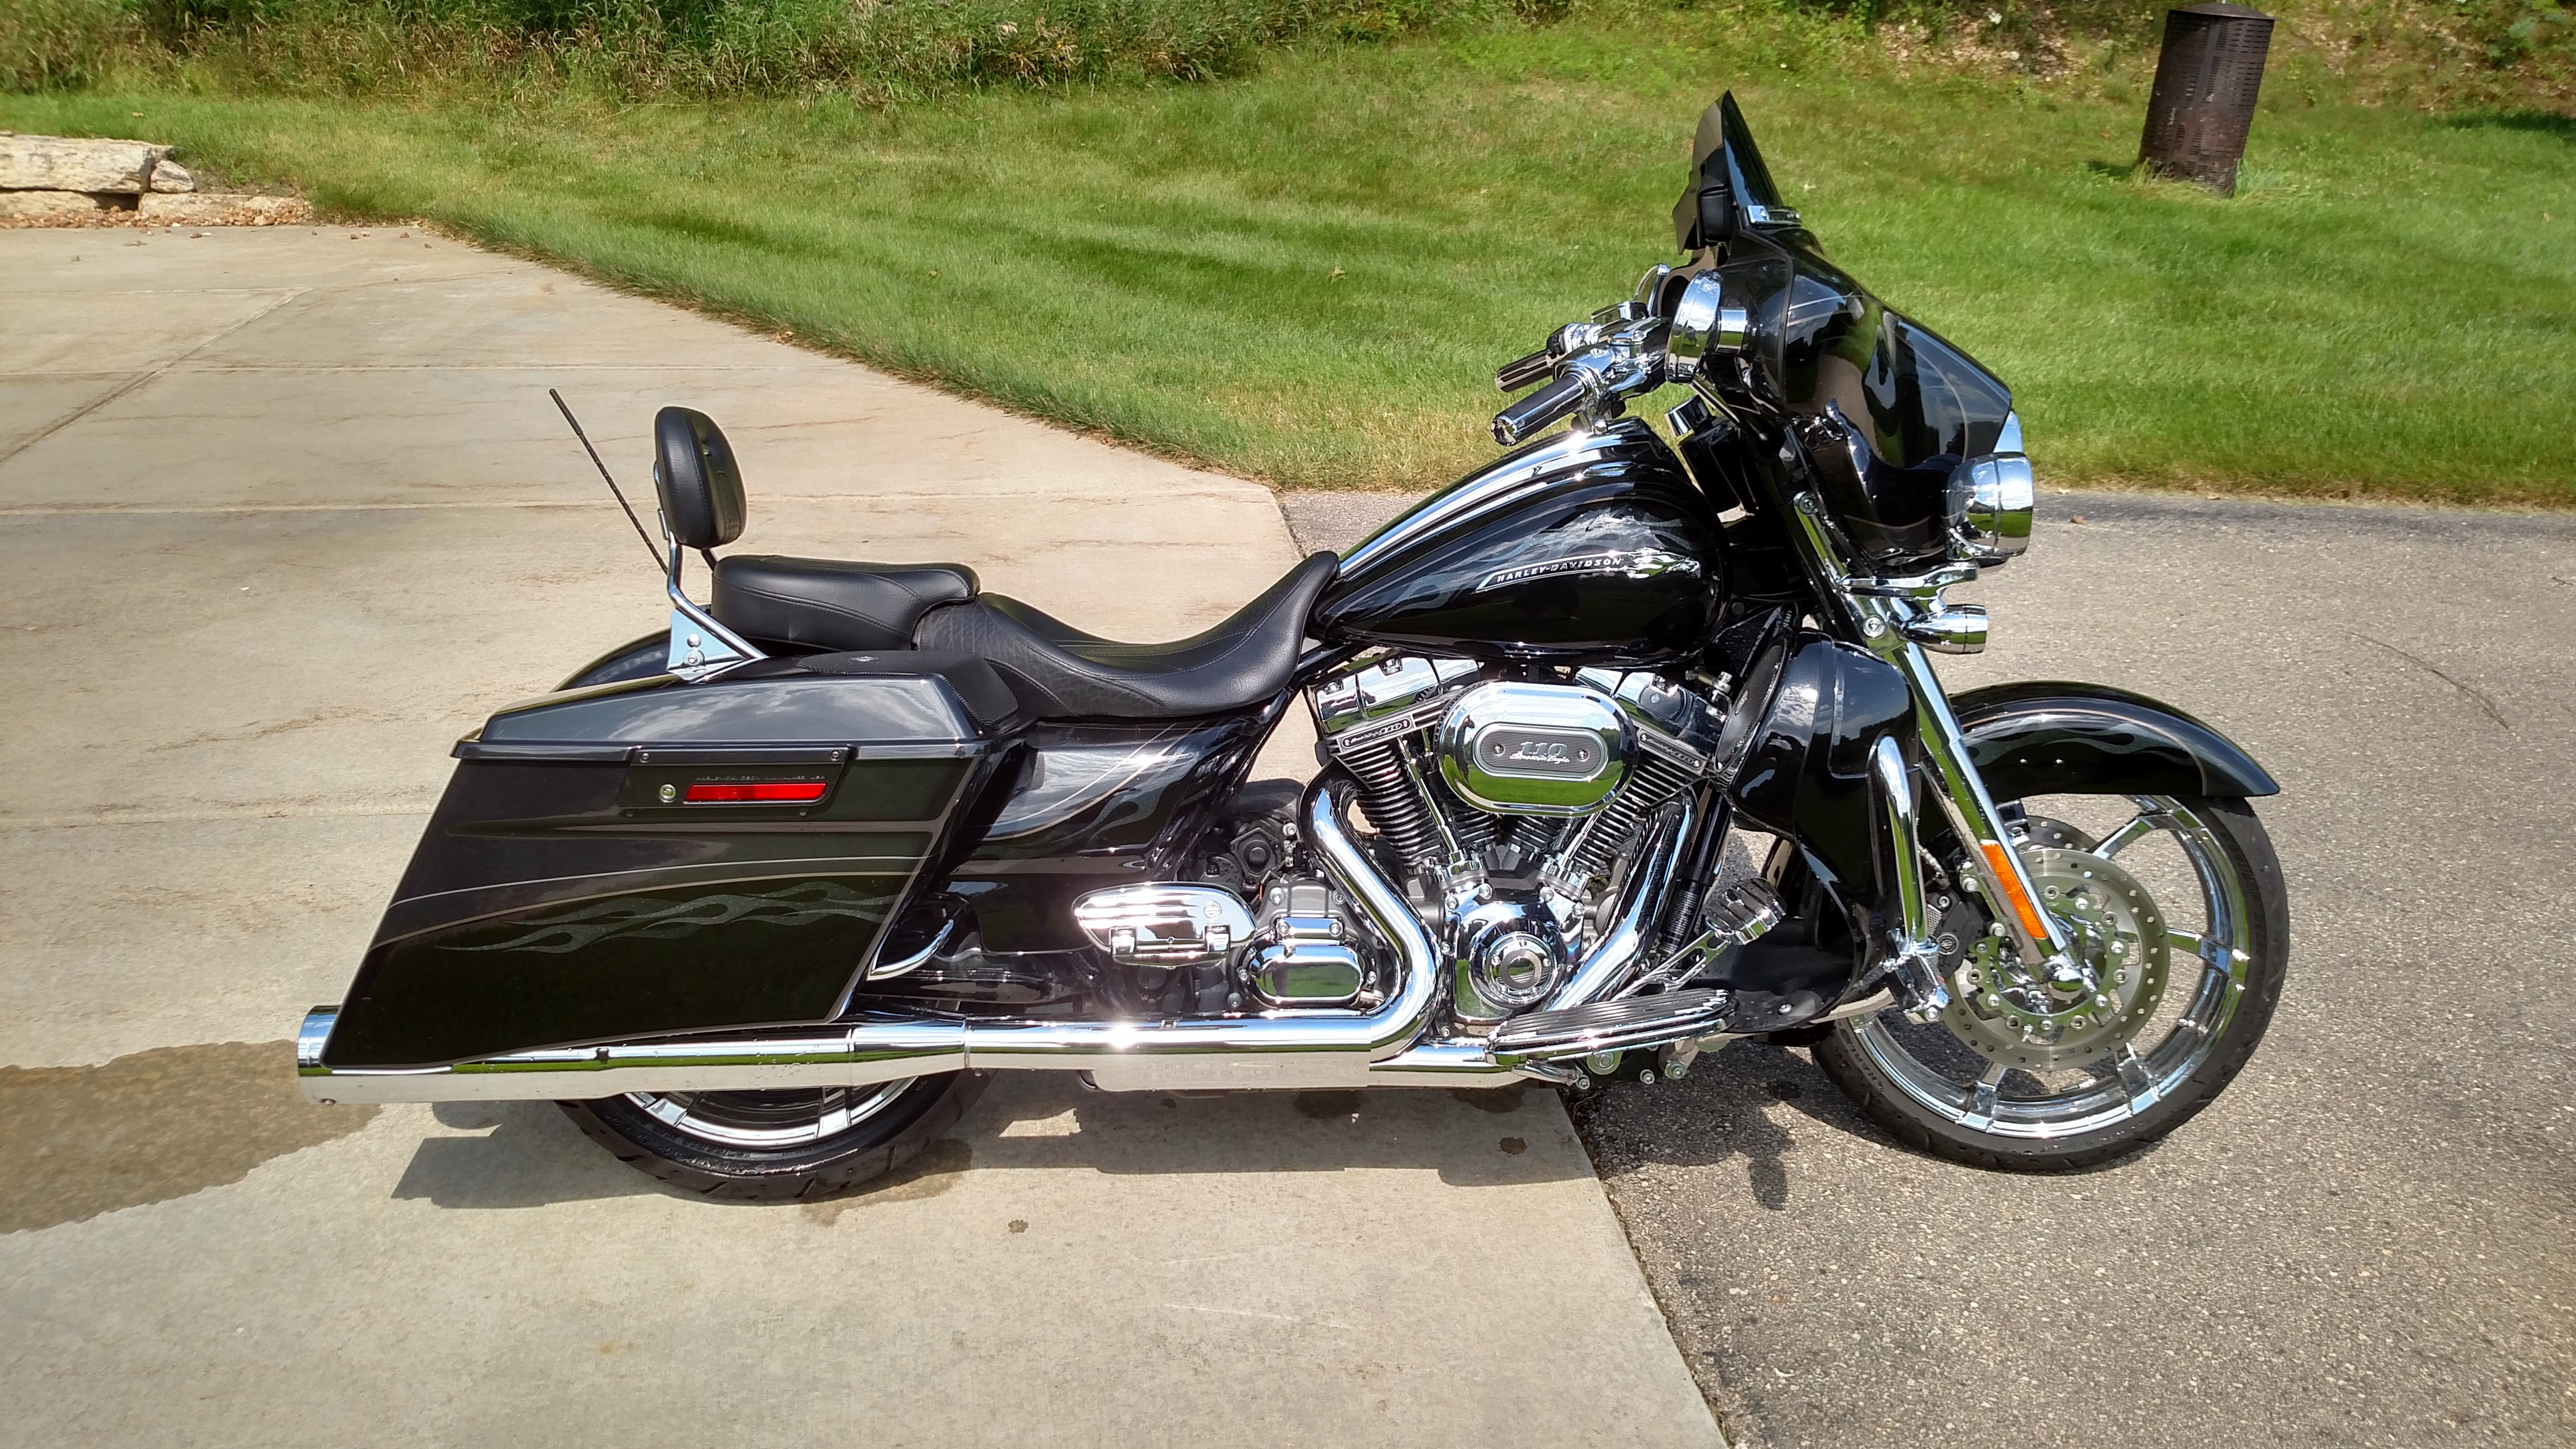 2013 harley davidson flhxse3 cvo street glide for sale autos post. Black Bedroom Furniture Sets. Home Design Ideas